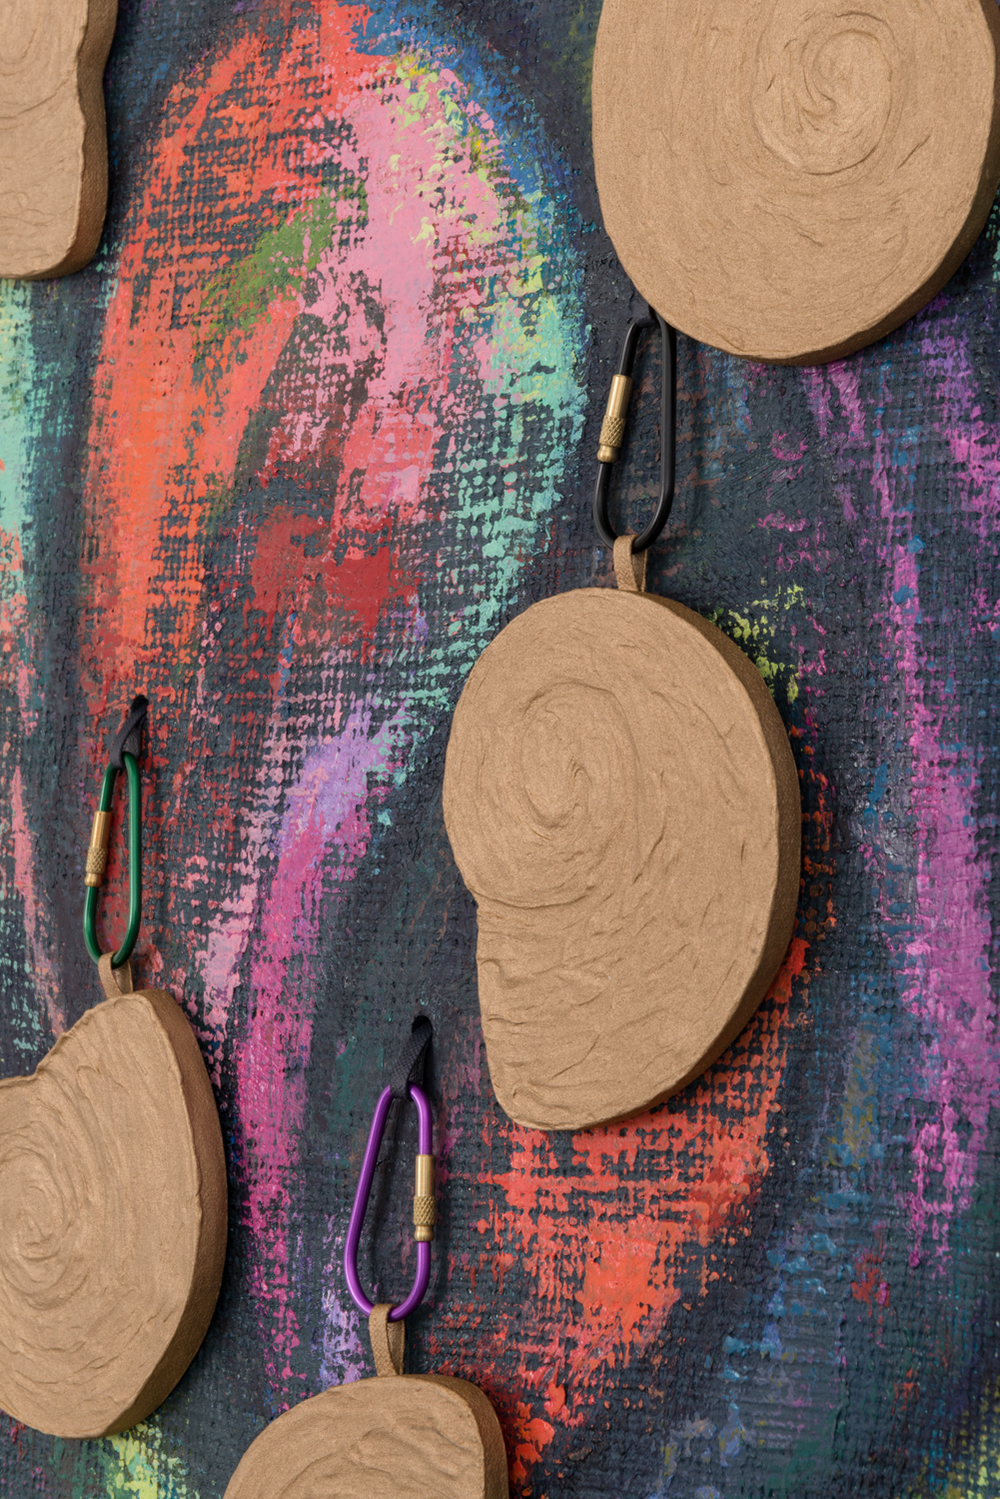 Dianna Molzan  Untitled  (Detail) 2016 Oil on jute, oil on canvas and wood, and carabiners 33h x 23.5w x 2.1d in DM003